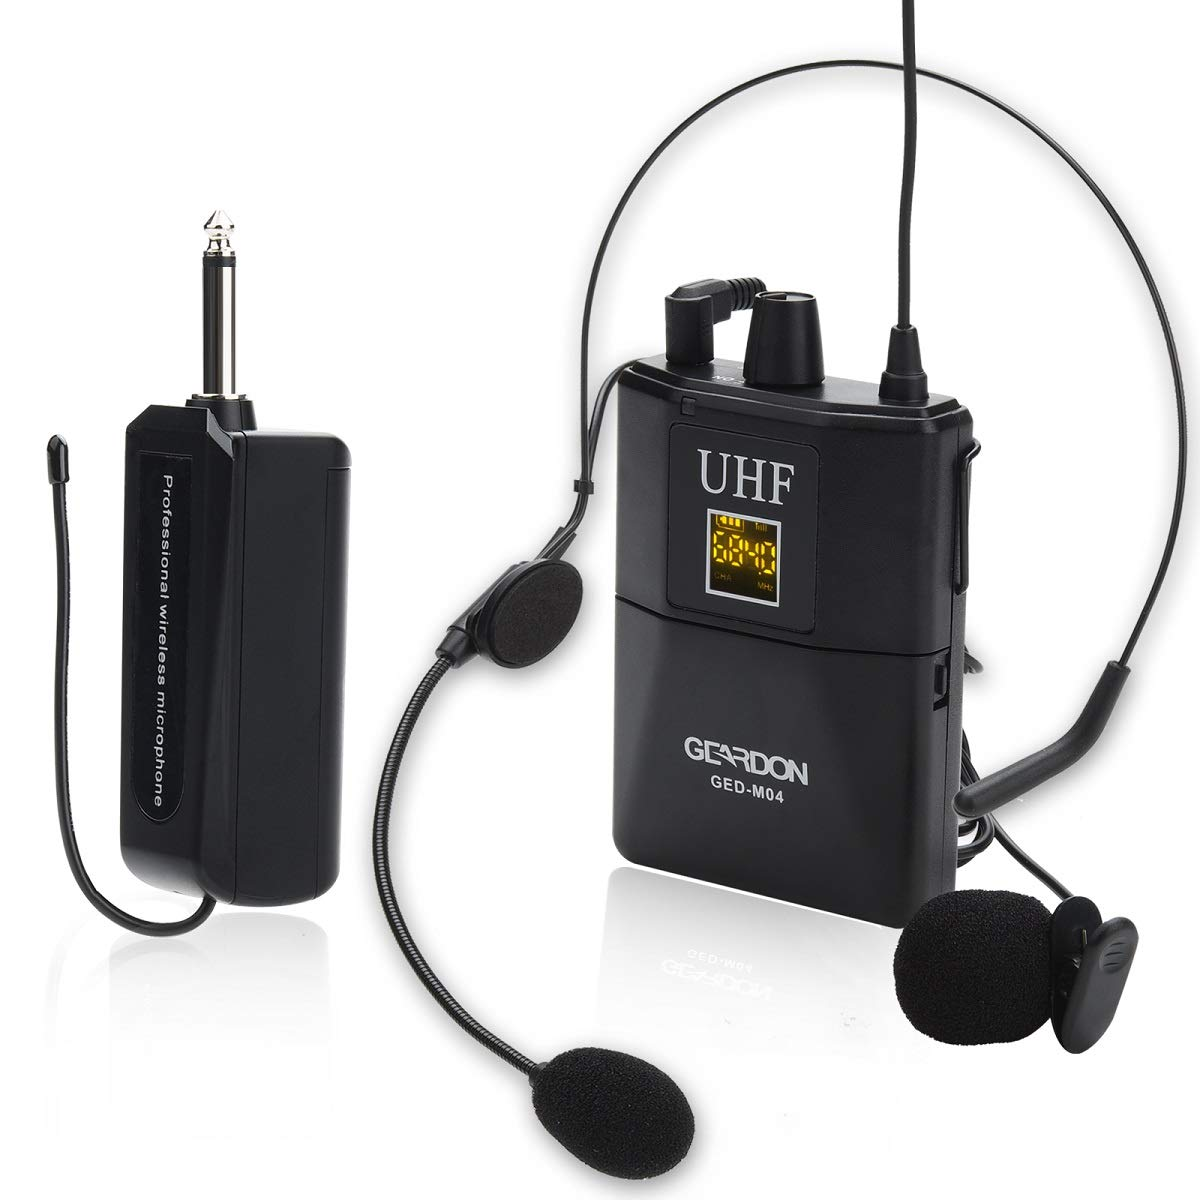 GEARDON UHF Lavalier Lapel Microphone, Wireless Headset Mic with Bodypack Transmitter and Mini Rechargeable Receiver for Teaching/Public Speaking/Church by GEARDON